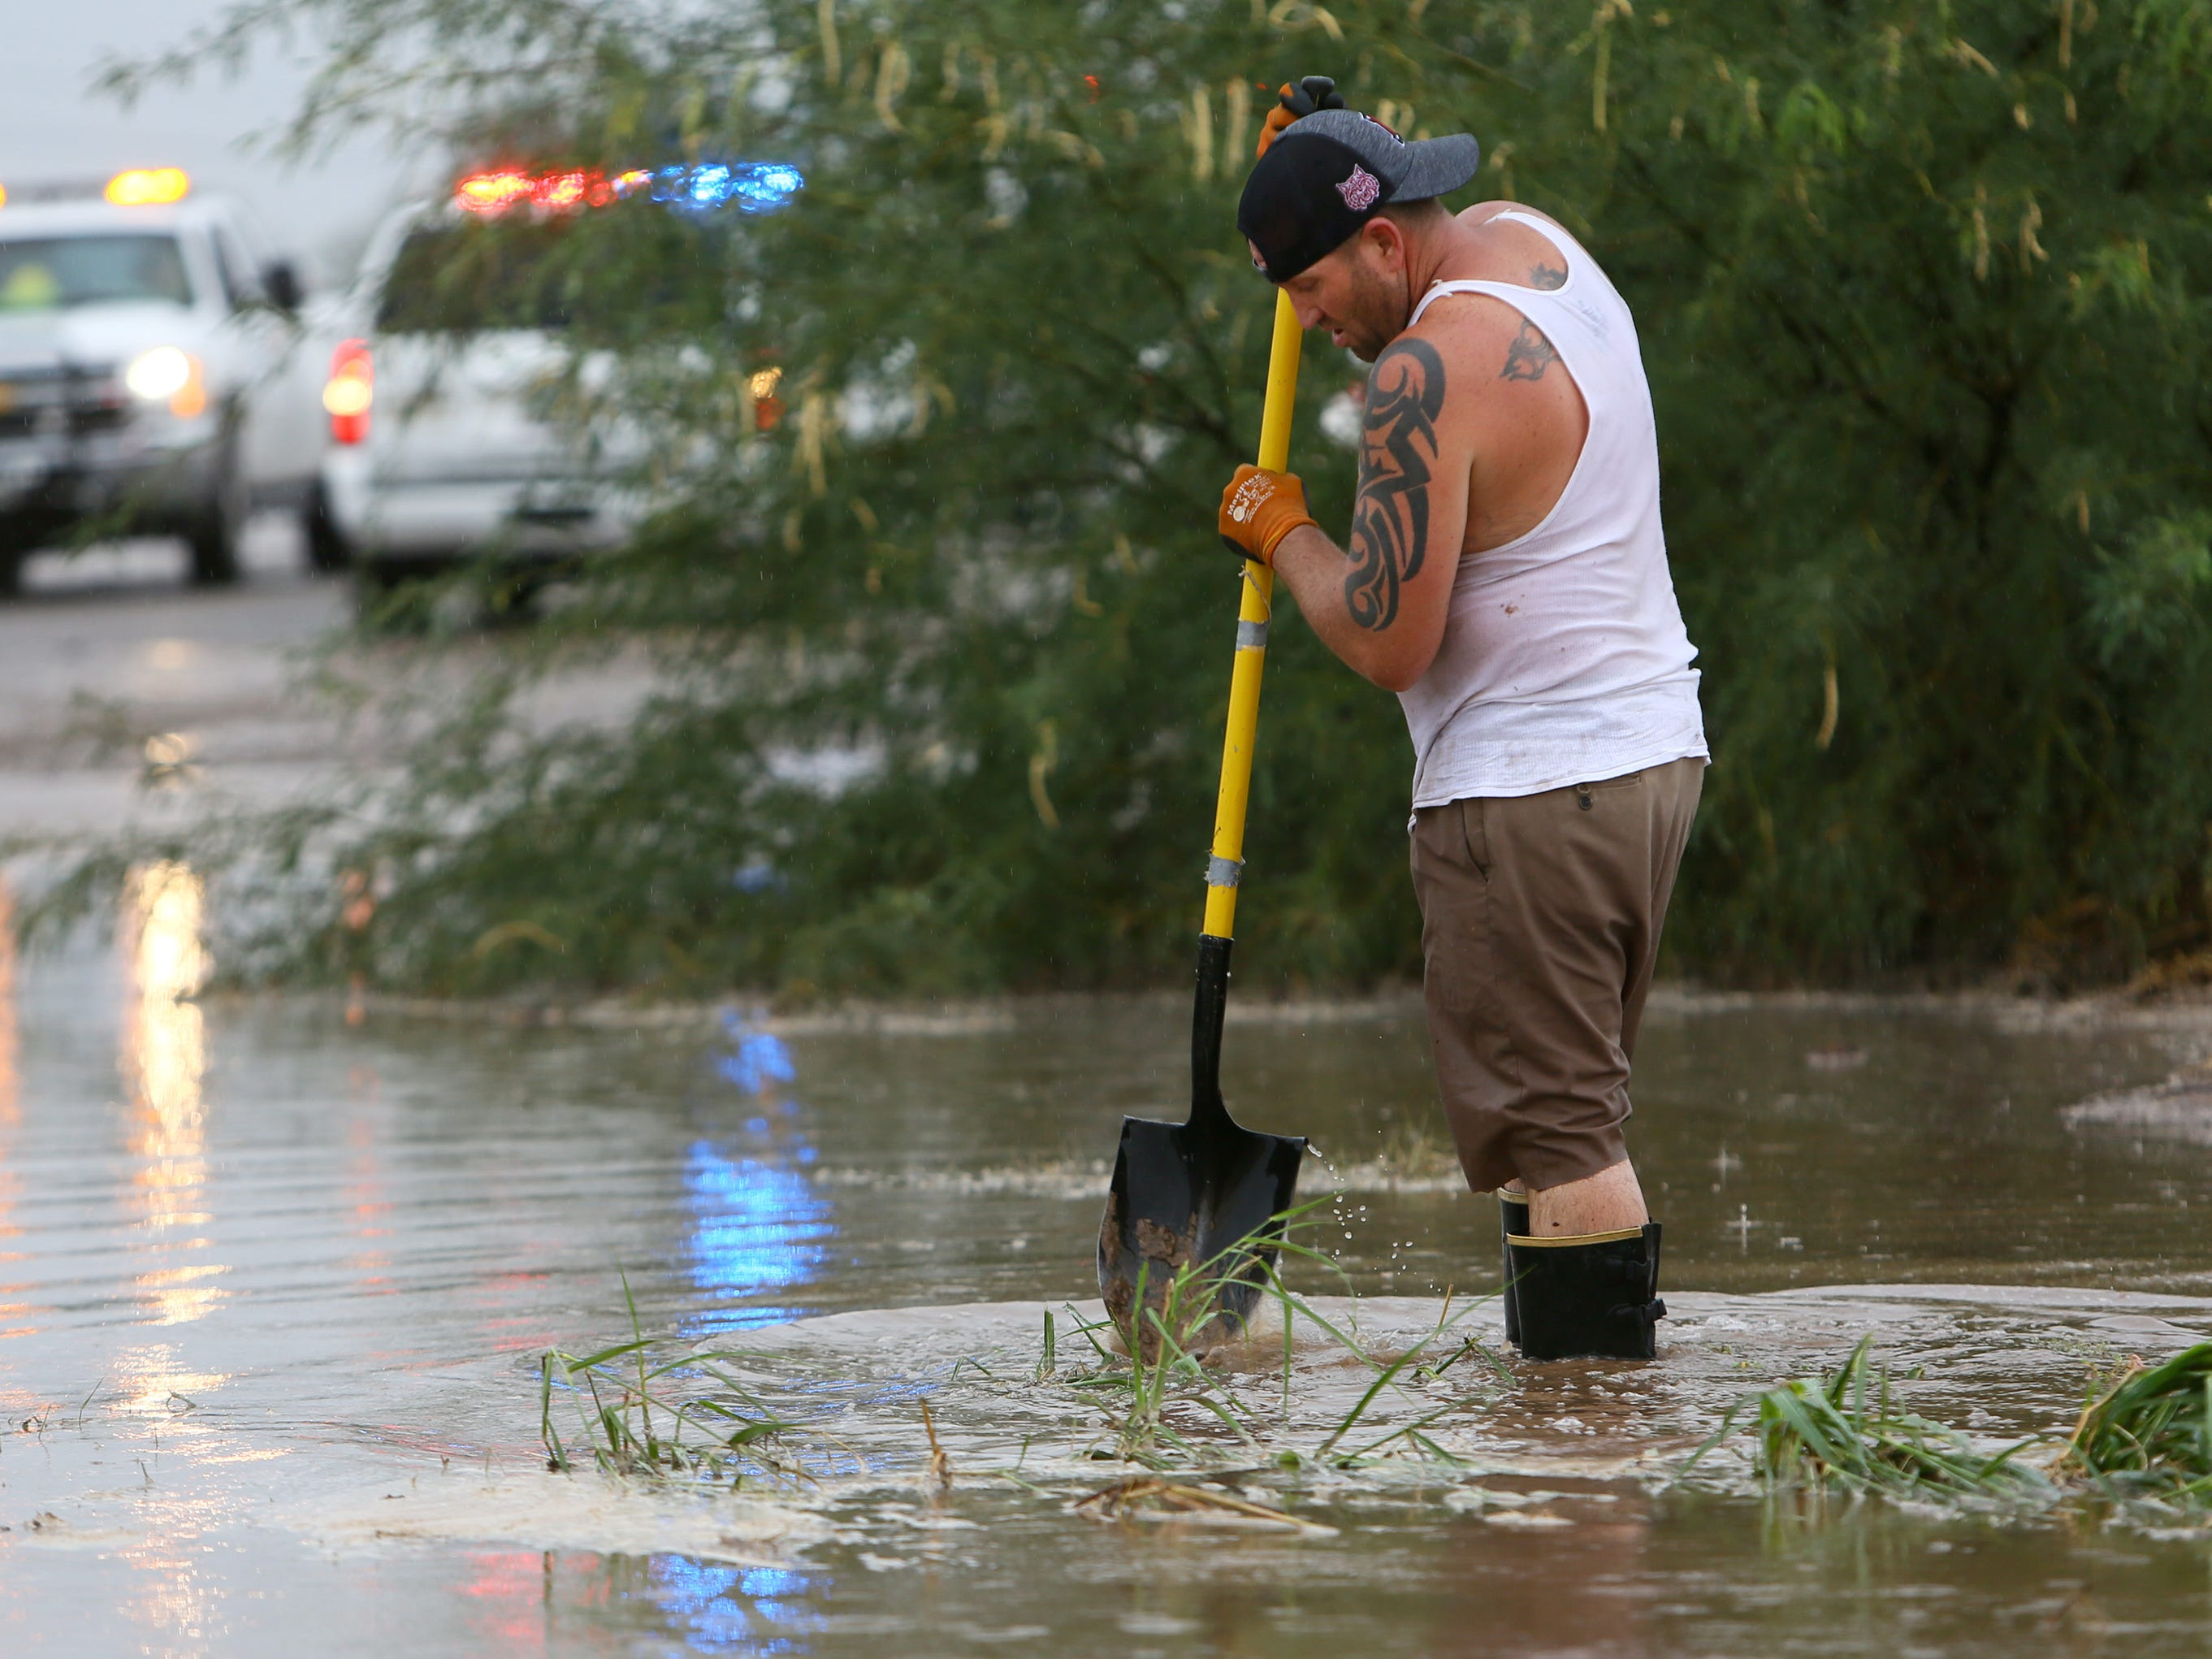 A Tucson resident who said his backyard was flooded tries to dislodge debris from a wash behind homes at North Cerius Stravenue and West Calle Maverick during rain from the remnants of Hurricane Rosa in Tucson on Oct. 1, 2018.